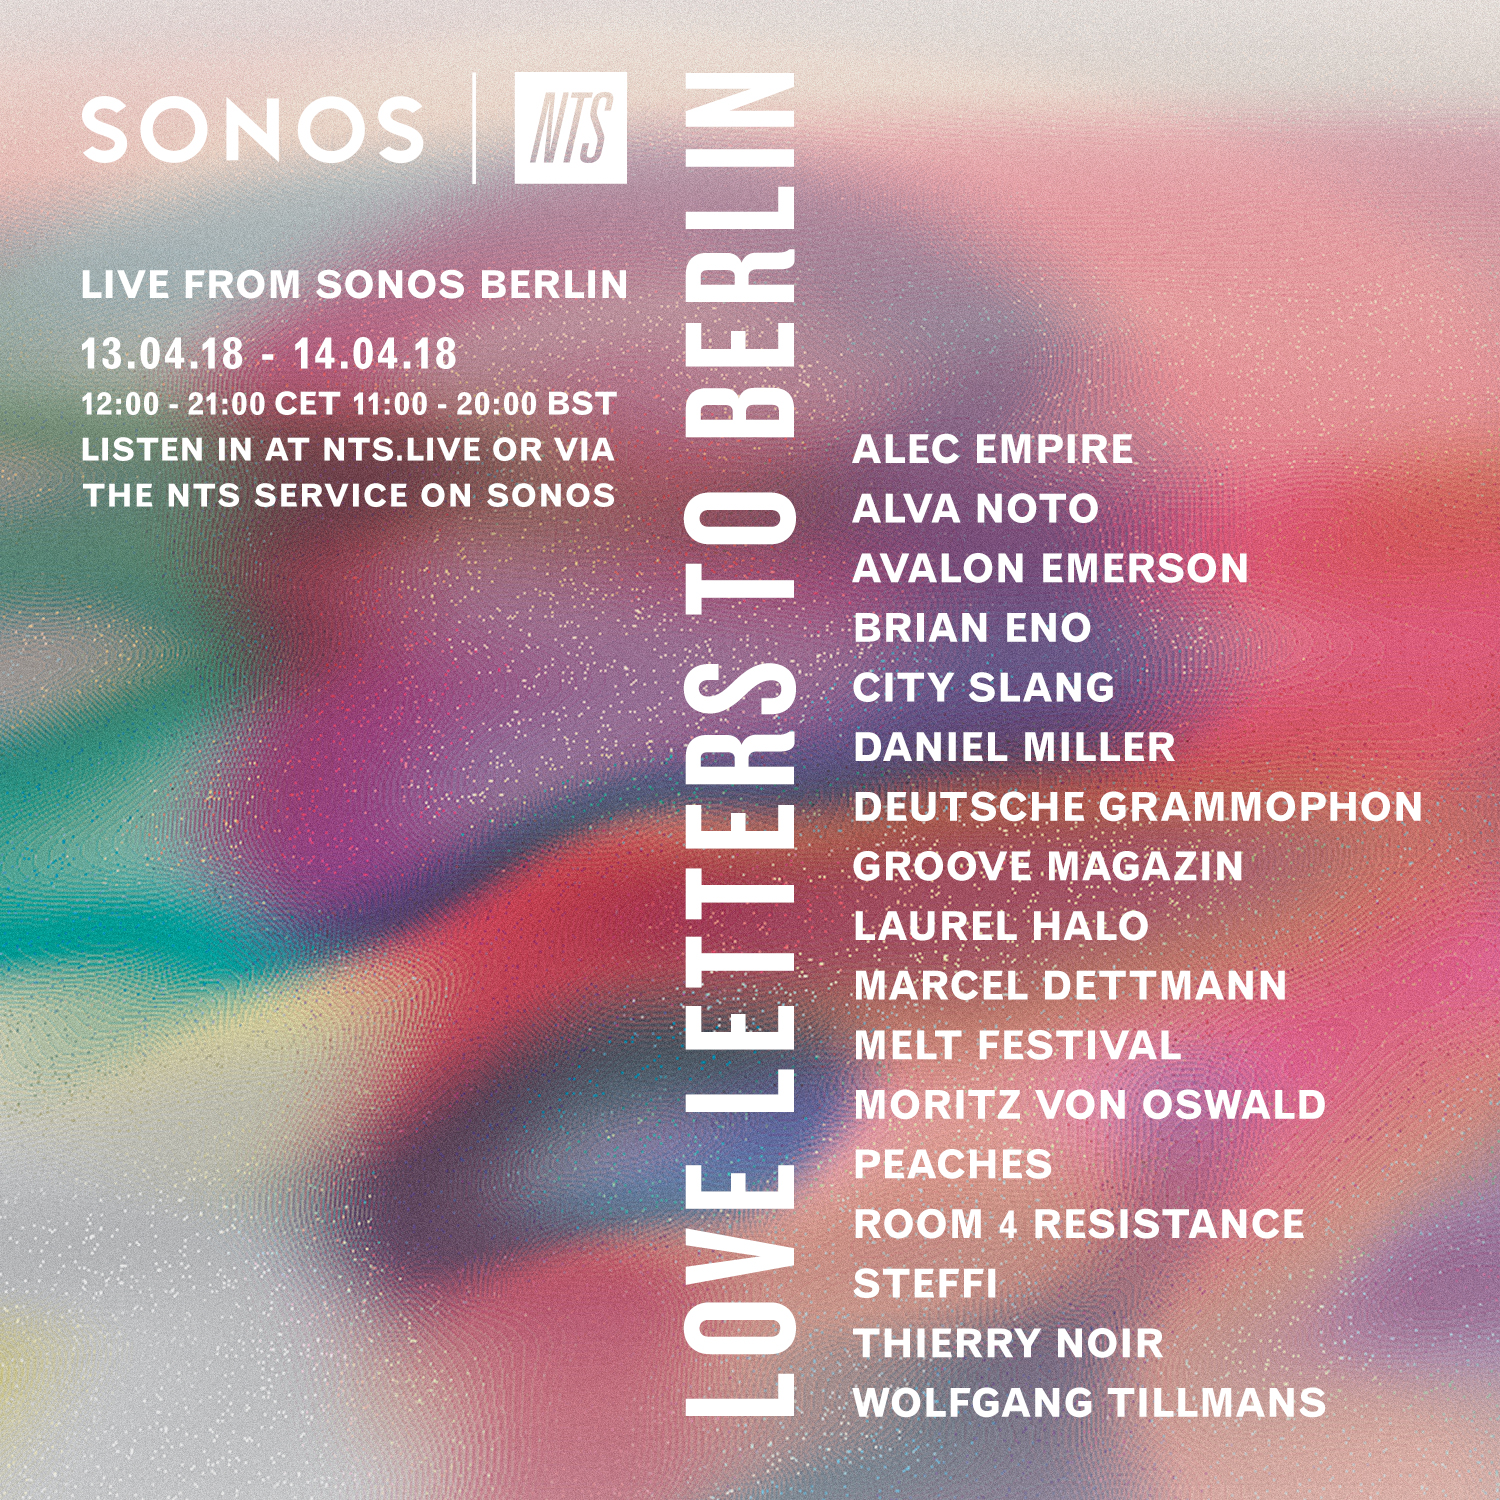 Sonos NTS 13.04.18 - 14.04.18 Artwork-Final-Amennd-0.jpg